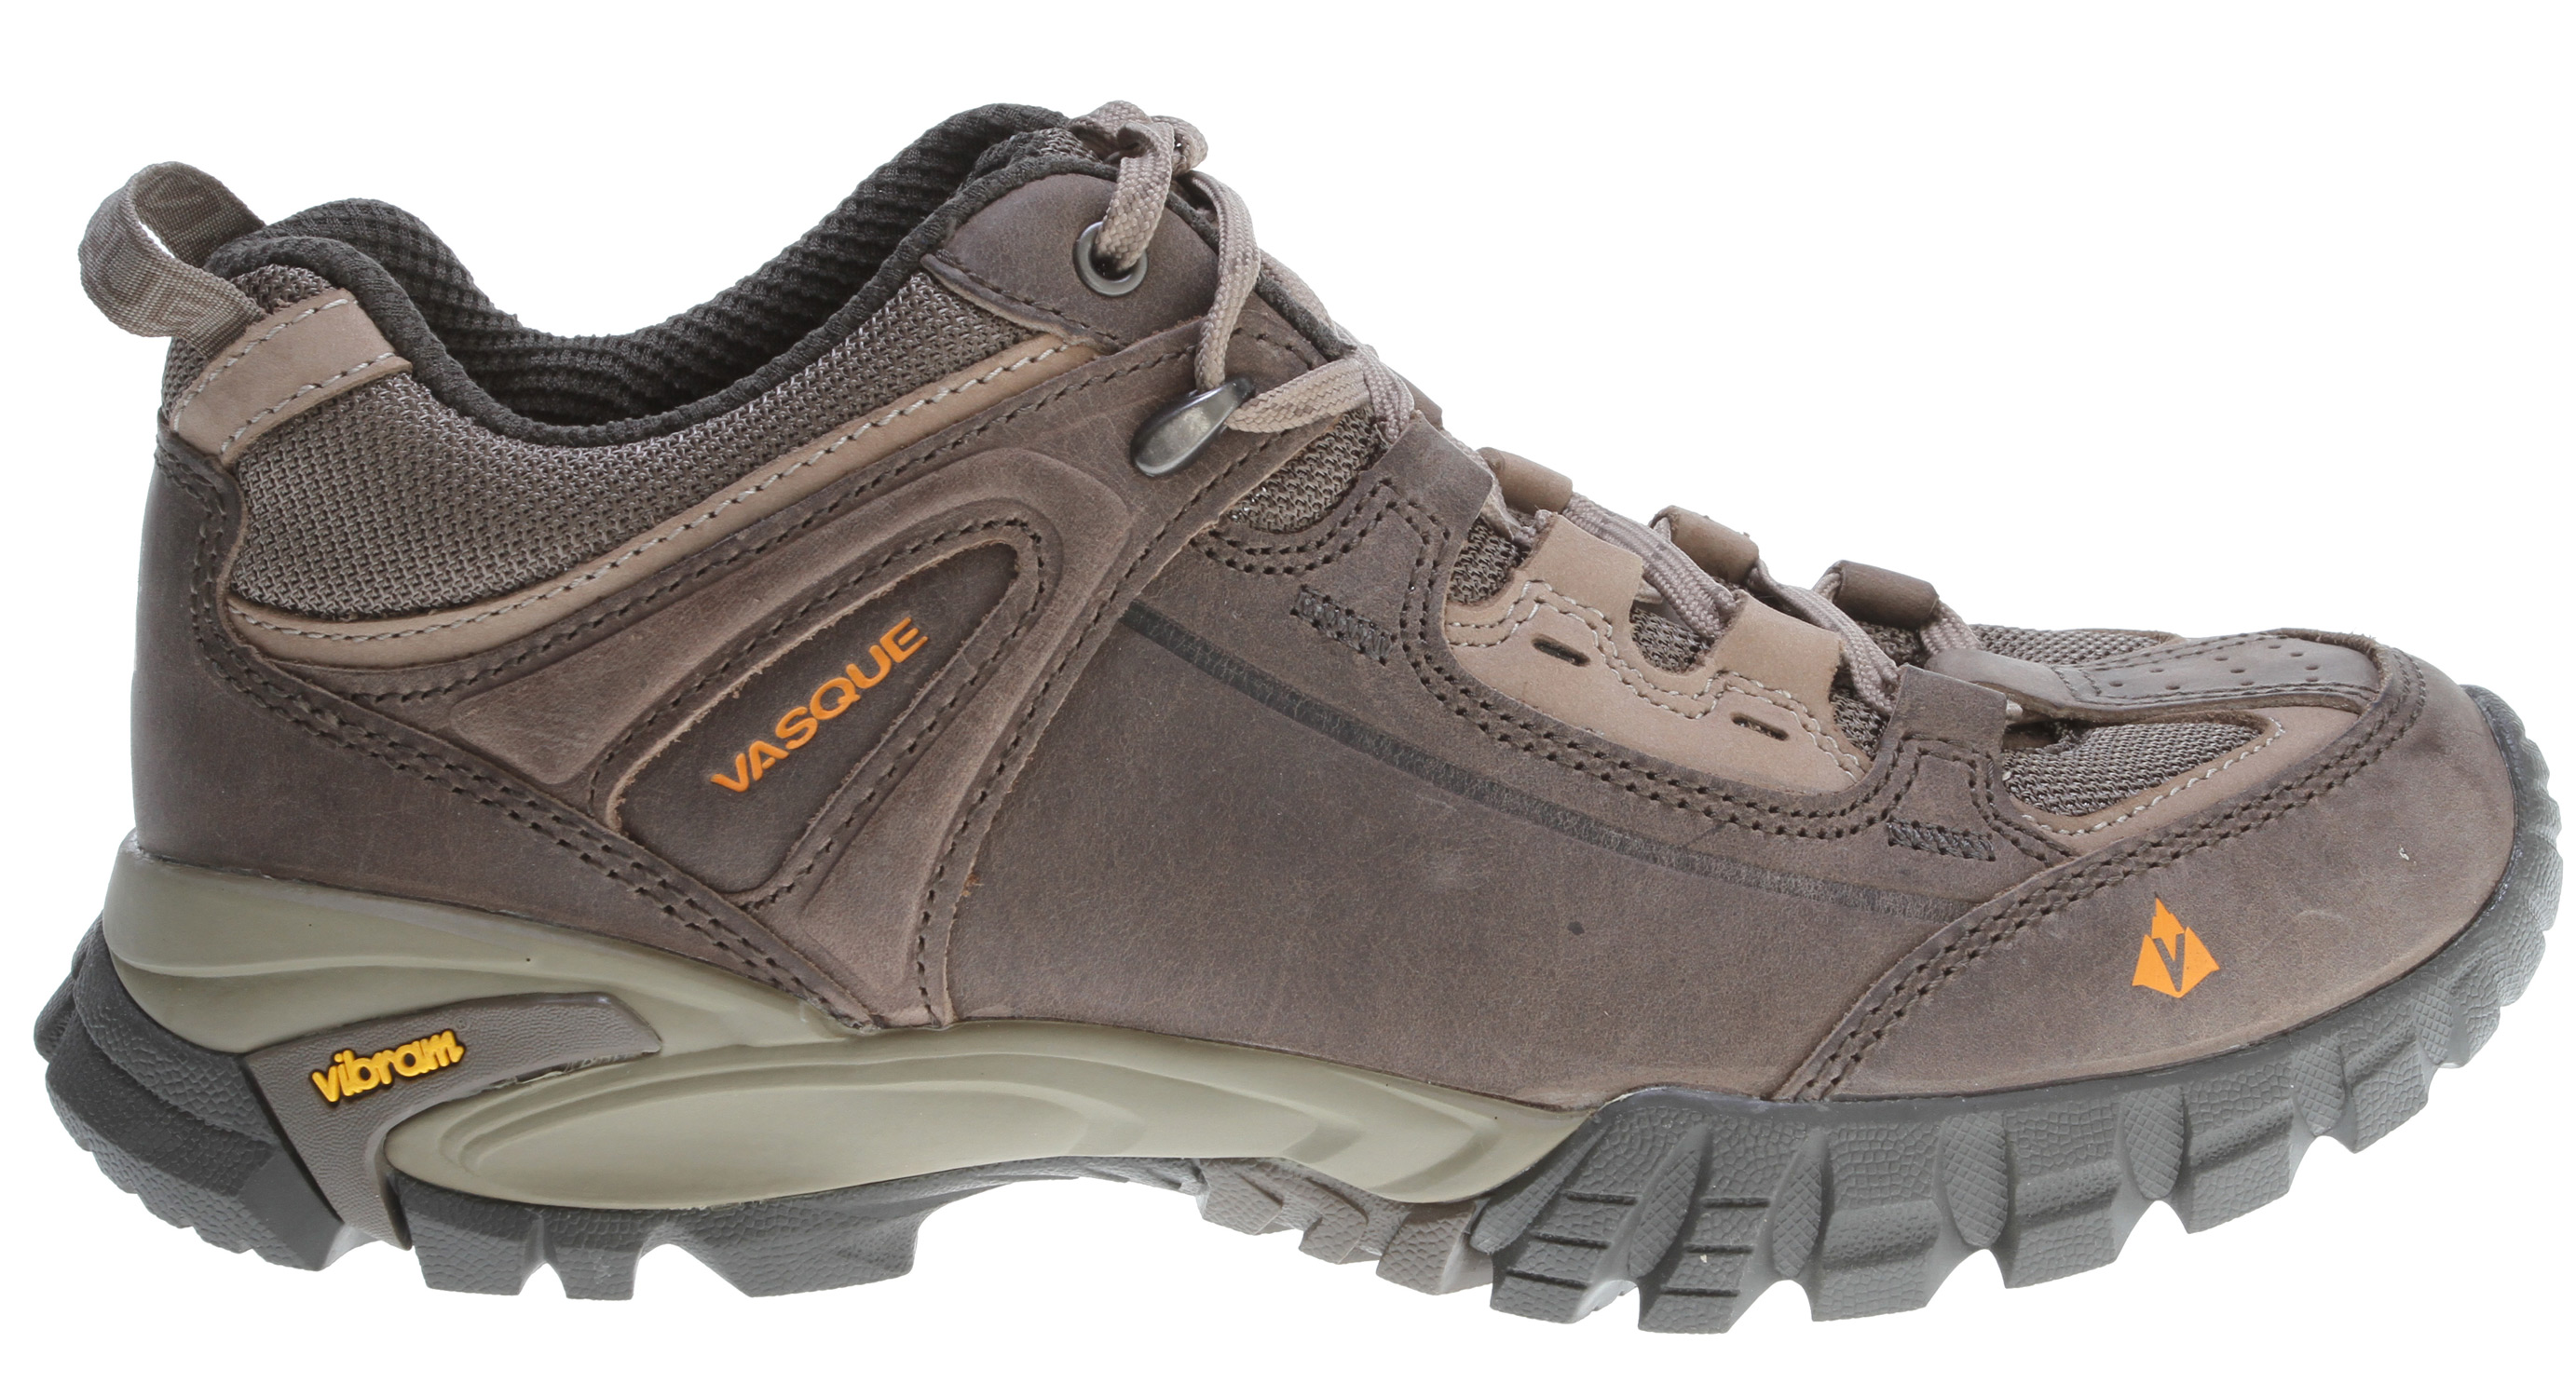 Camp and Hike The Mantra 2.0 is a modern hiking shoe. Form meets function, with stability-providing midsoles, Vibram outsoles, and durable nubuck and mesh uppers. Comes with or without Gore-Tex liner, so it's ready for walks in the park or walks into the wild.Key Features of the Vasque Mantra 2.0 Hiking Shoes: Vibram: Our longest standing partner. Perpetuum Last: As the name suggests, the Perpetuum Last creates a fit for steady, long distance endeavors. Weight: 2lb. 4 oz. (1026g) Outsole: Vibram Nuasi Last: Perpetuum Midsole: Molded PU - $86.95